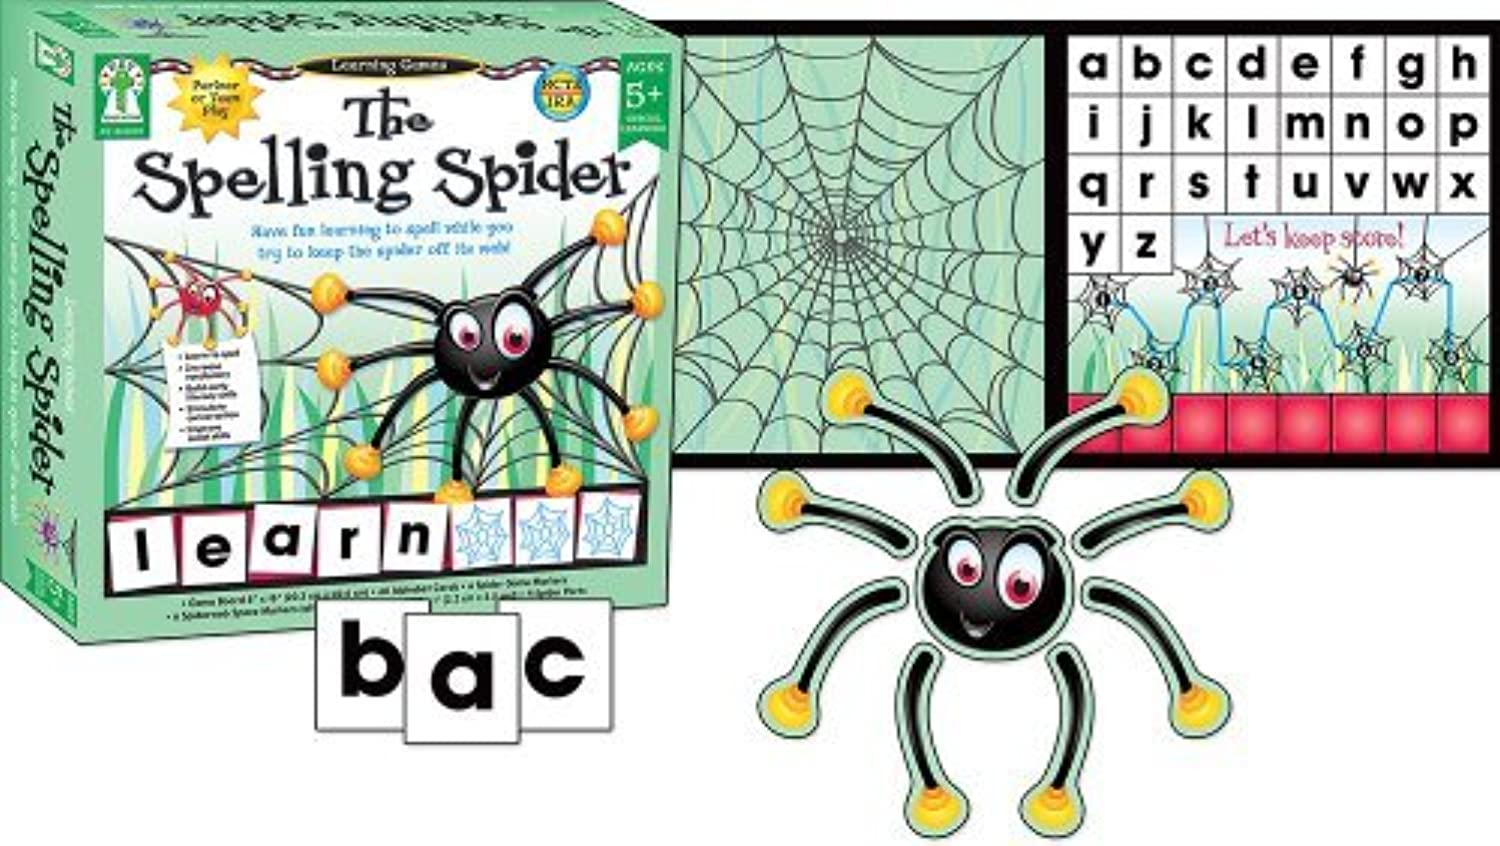 The Spelling Spider Educational Board Game by Key Education